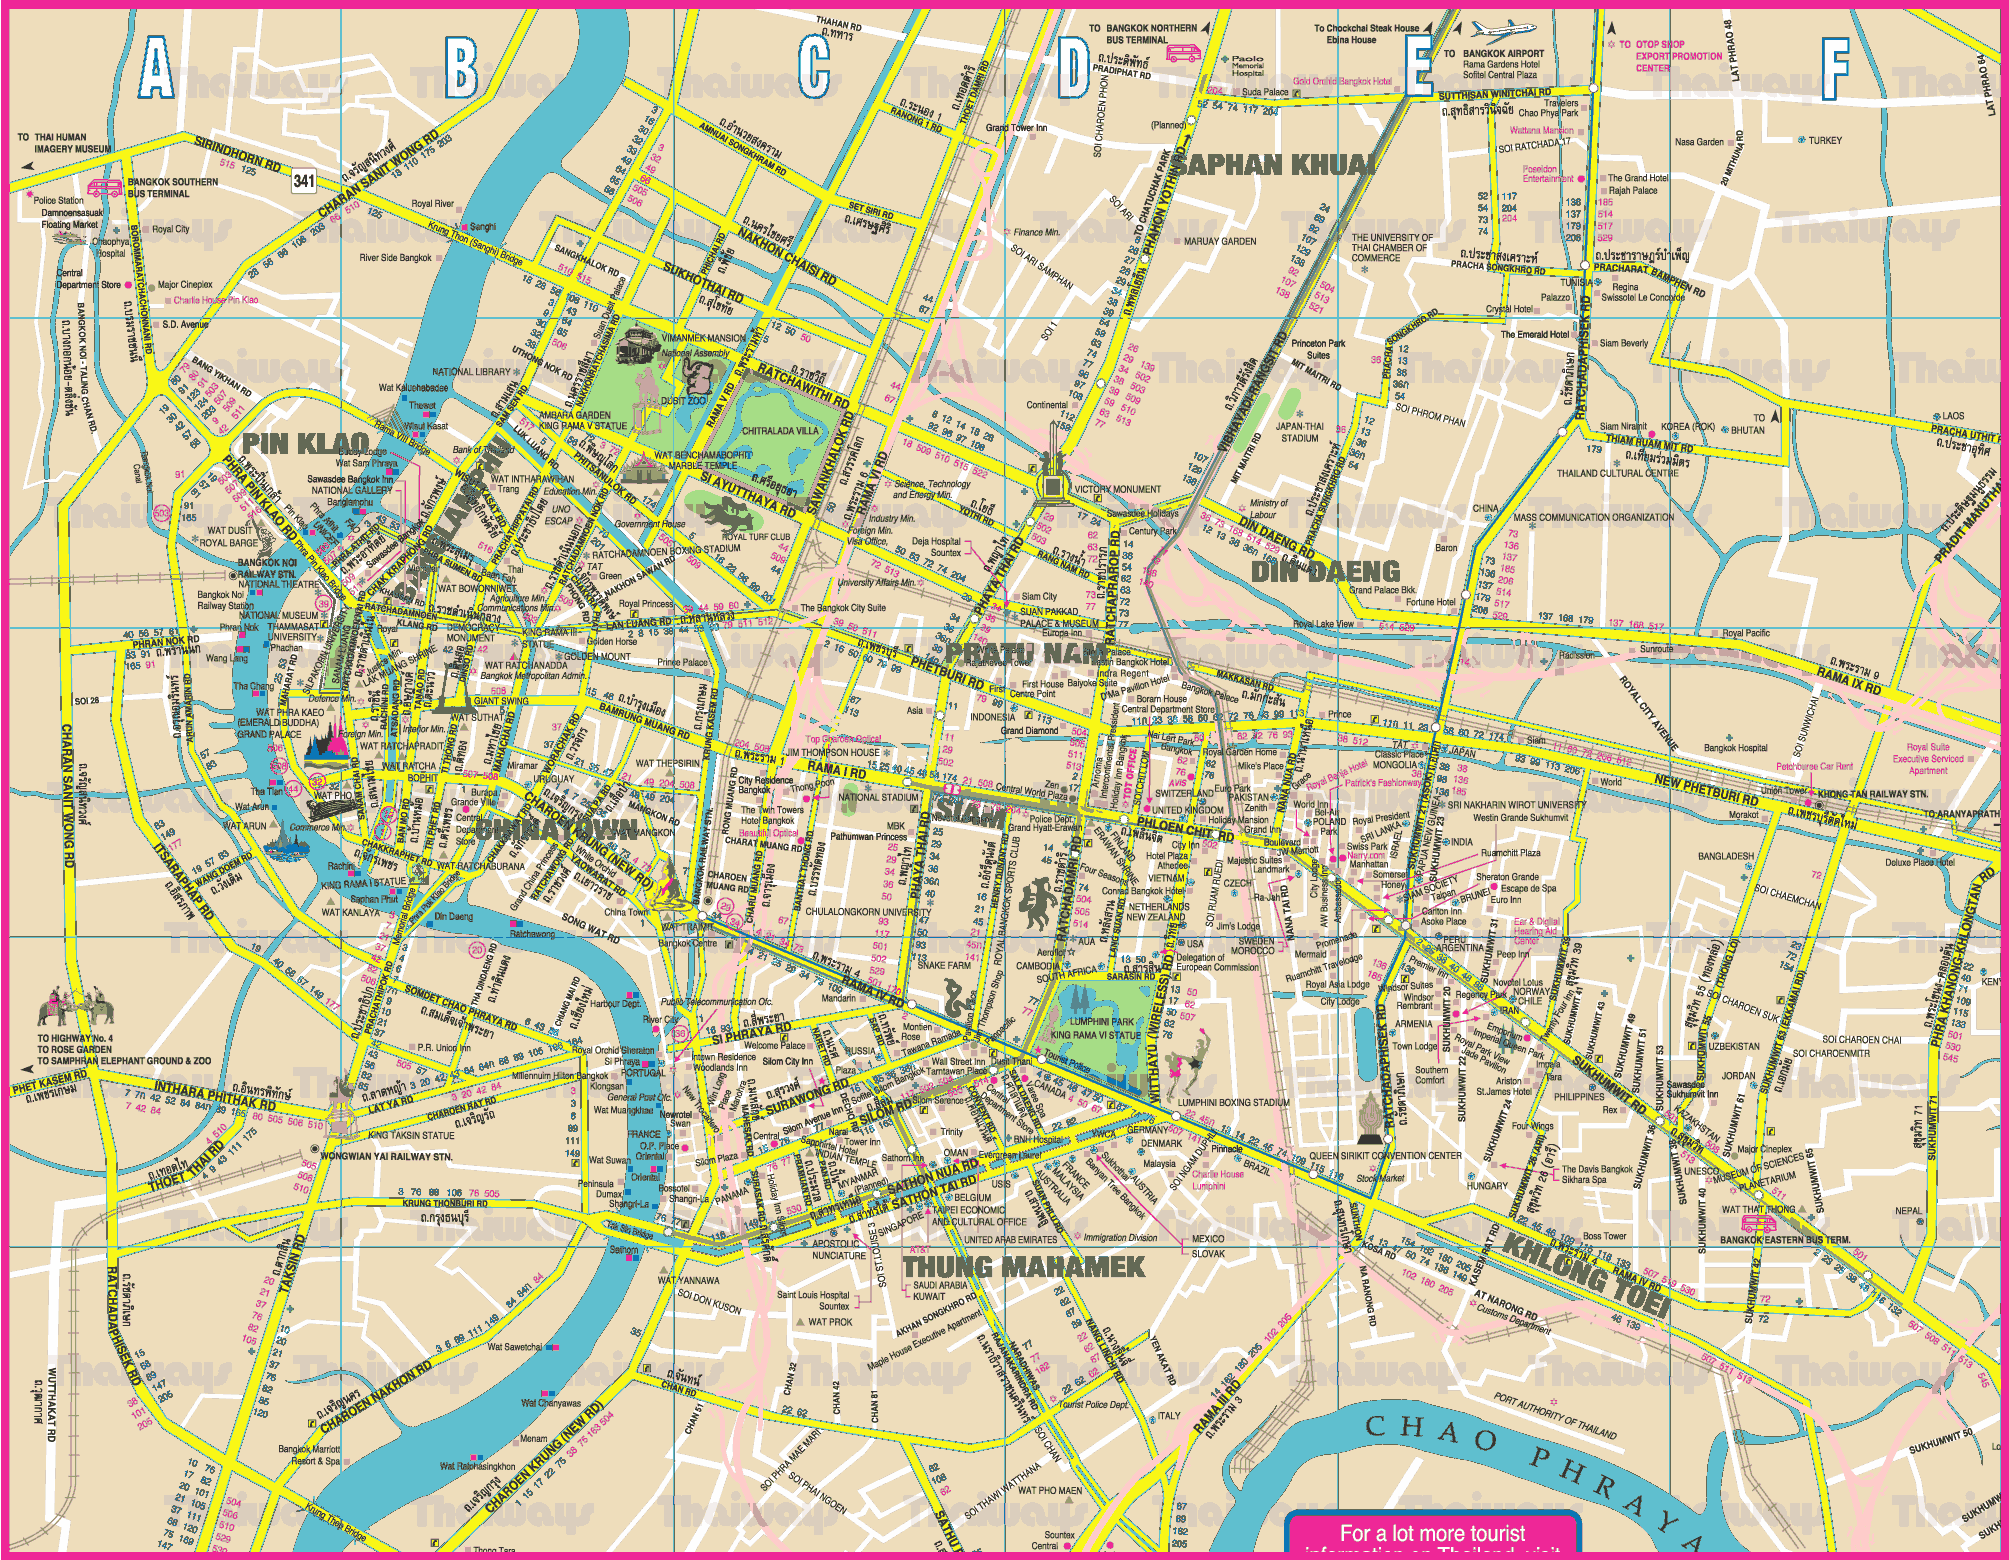 Bangkok City Map Bangkok Map   Detailed City and Metro Maps of Bangkok for Download